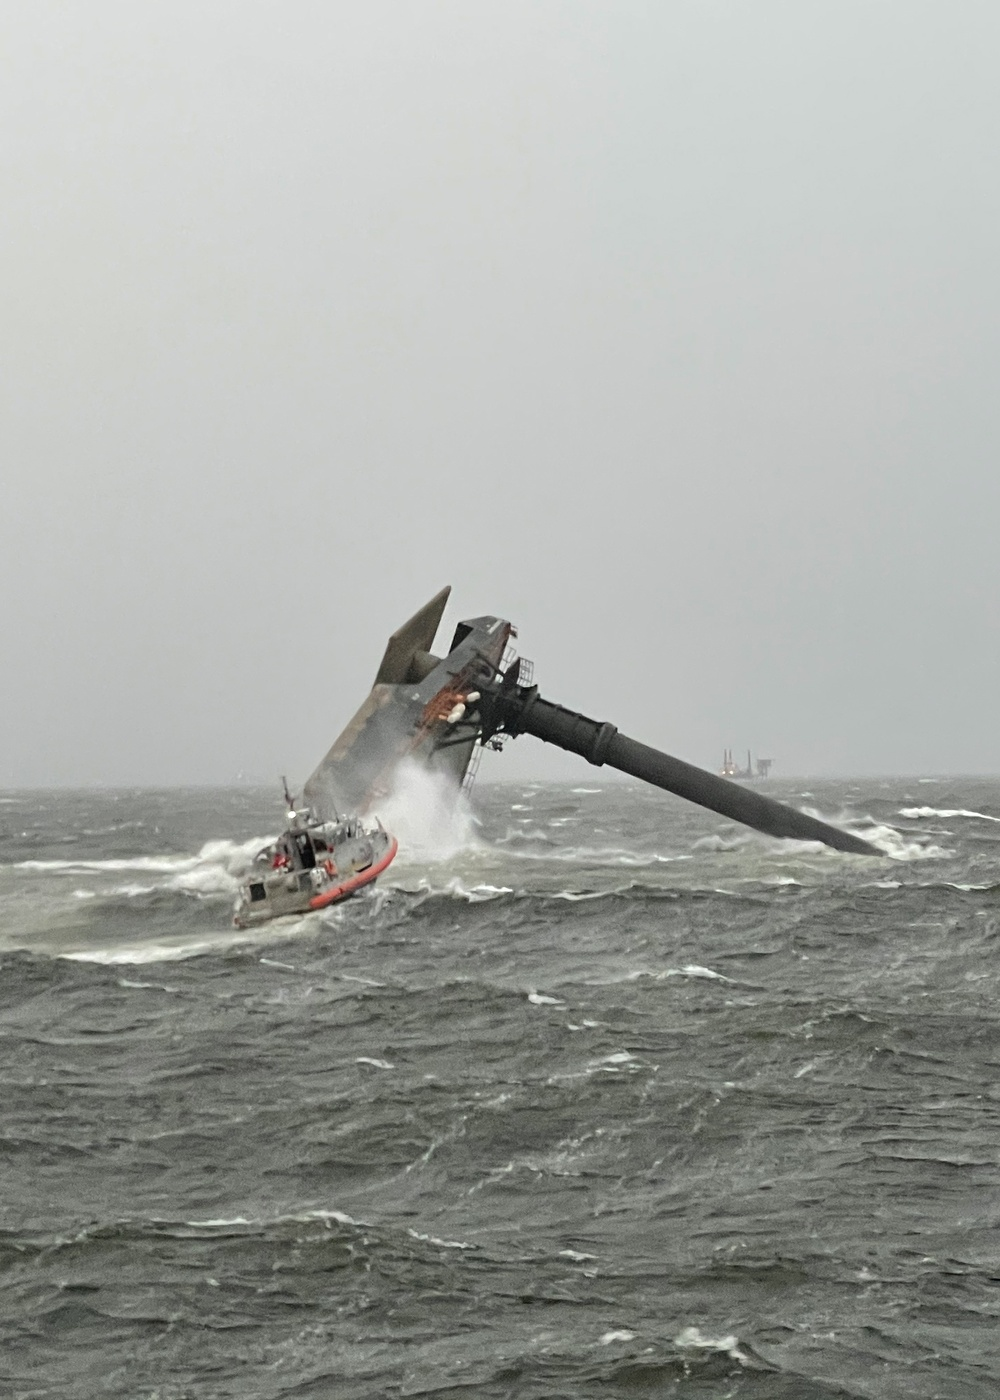 Coast Guard, good Samaritans rescue 6 people from capsized vessel 8 miles south of Grand Isle, searching for more